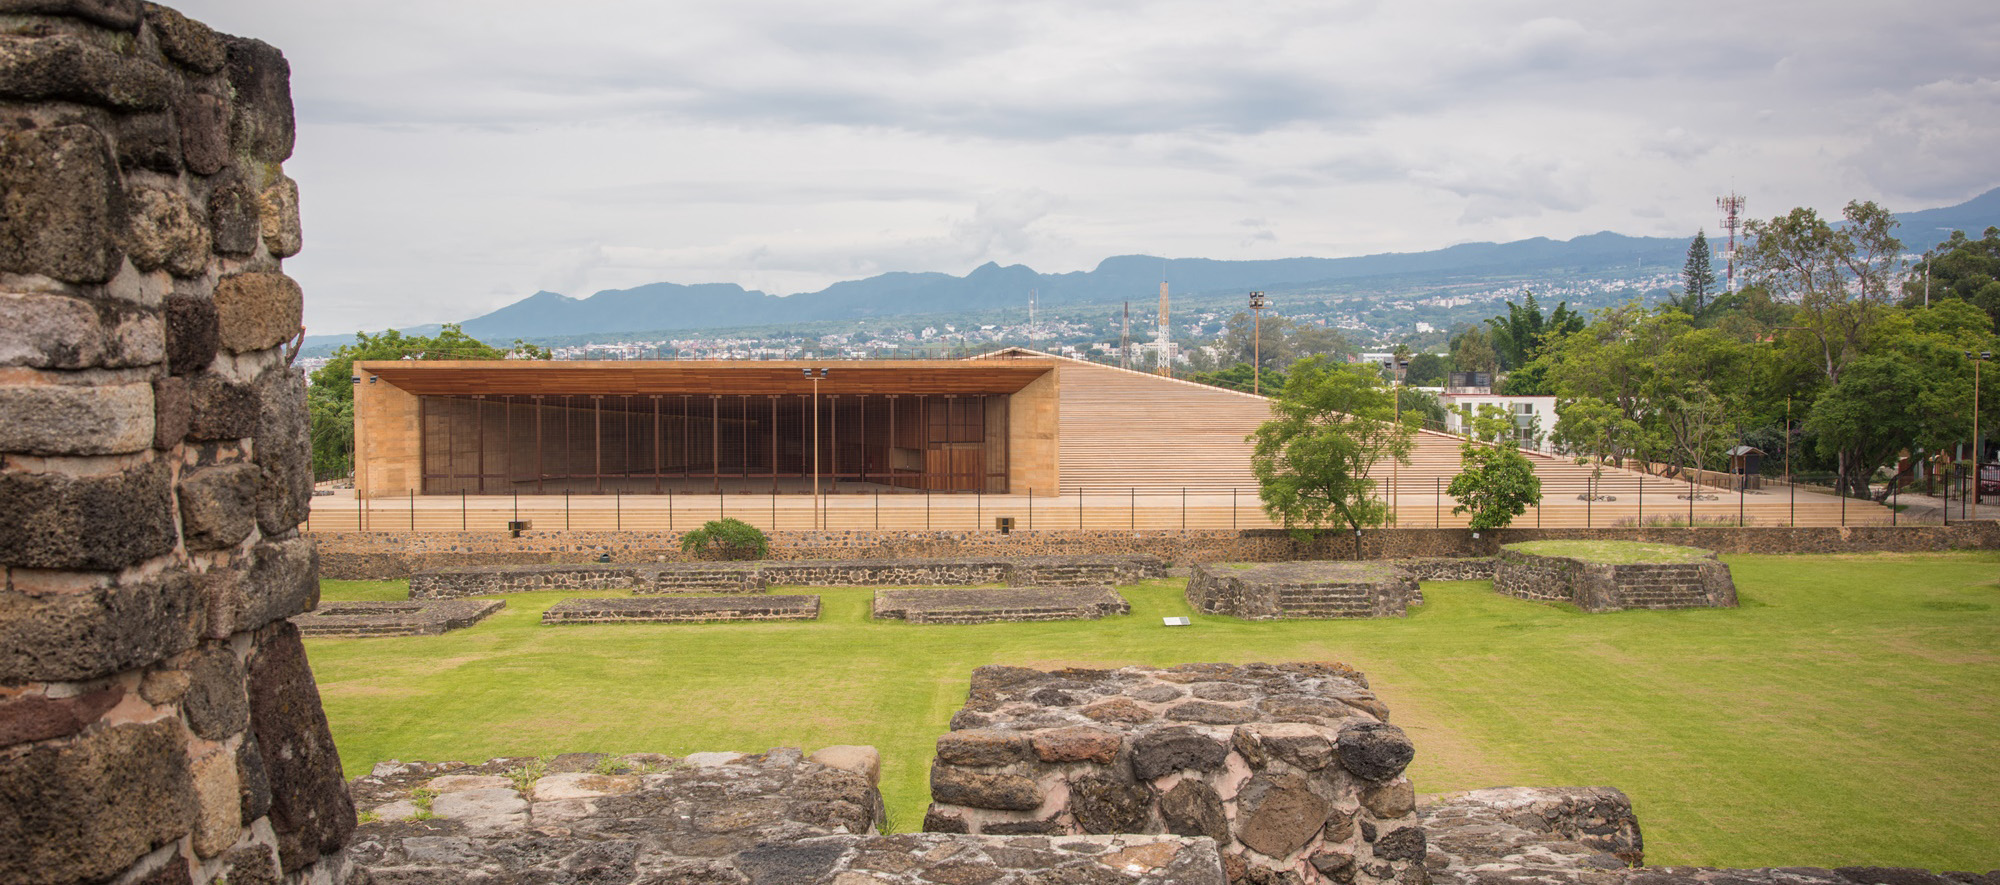 Teopanzolco Cultural Center by Isaac Broid + PRODUCTORA. Photograph by Jaime Navarro and Rory Gardiner